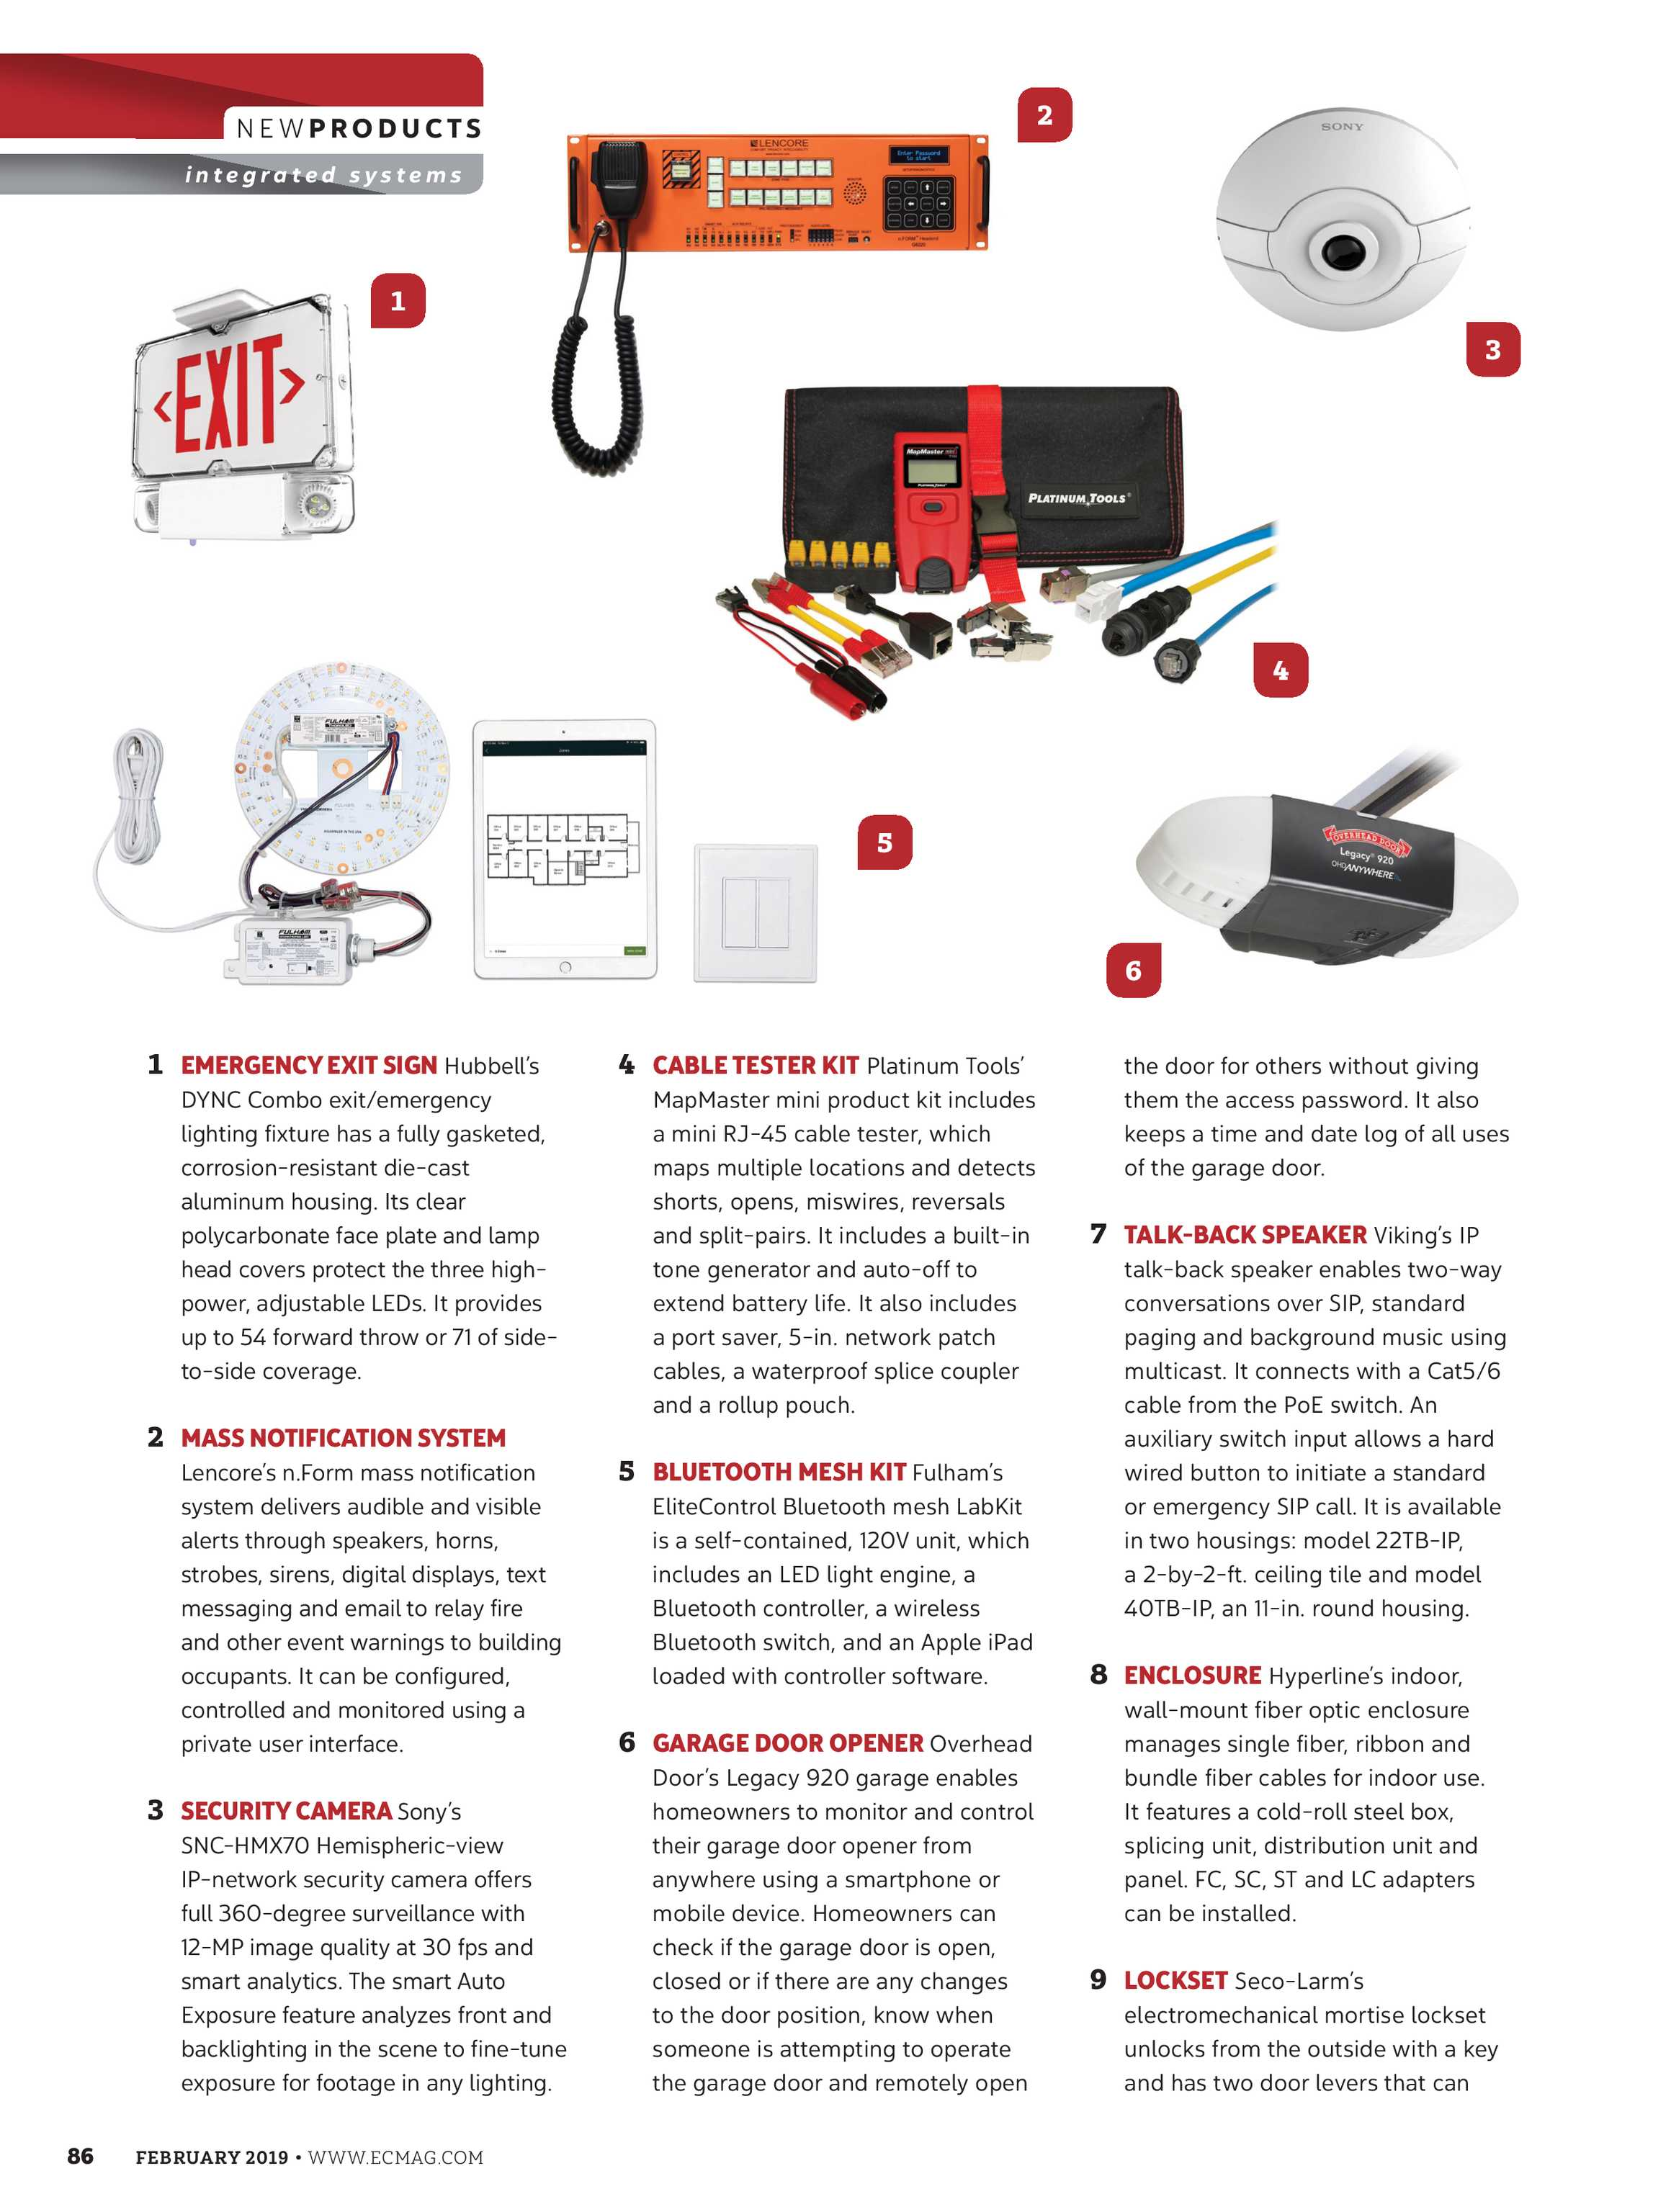 Electrical Contractor - February 2019 - page 86